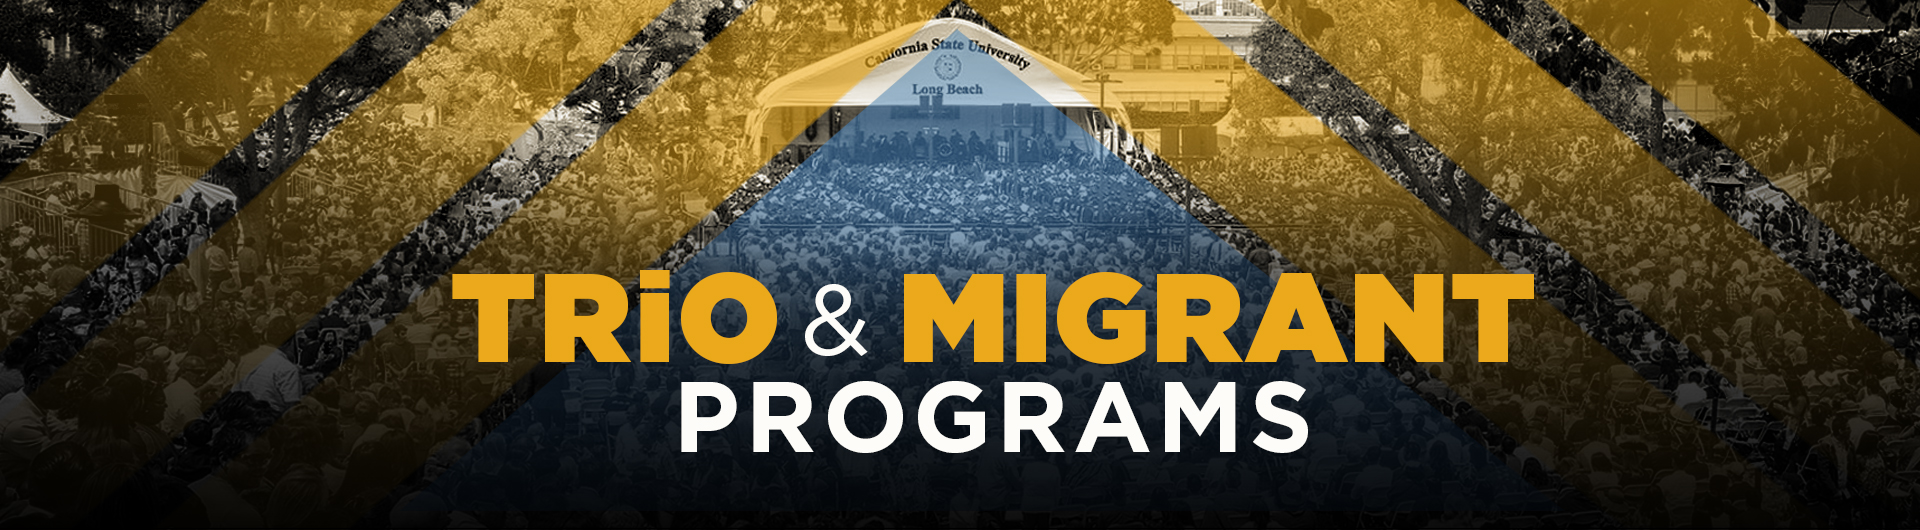 TRIO AND MIGRANT PROGRAMS